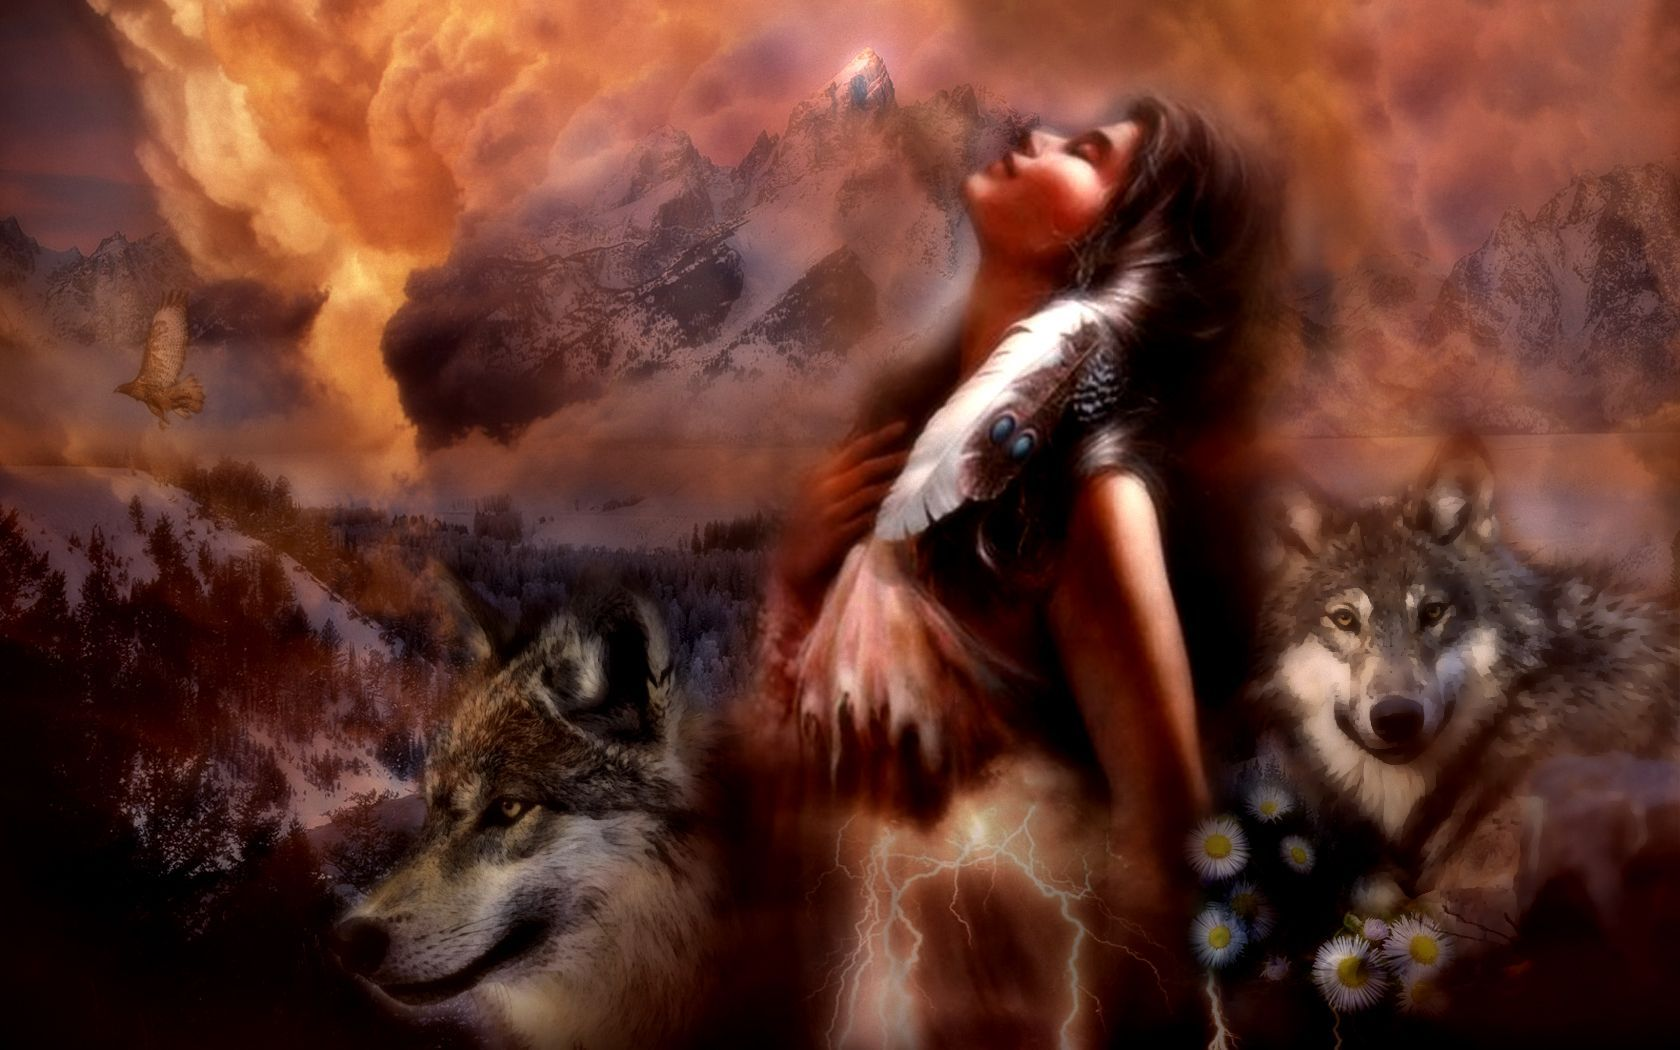 Artistico - Donne  - Spirit - Dreams - Fire - Hawk - Wolves - Native American - Maiden - Entropy - Sfondi - Wolf - Aquila Sfondi